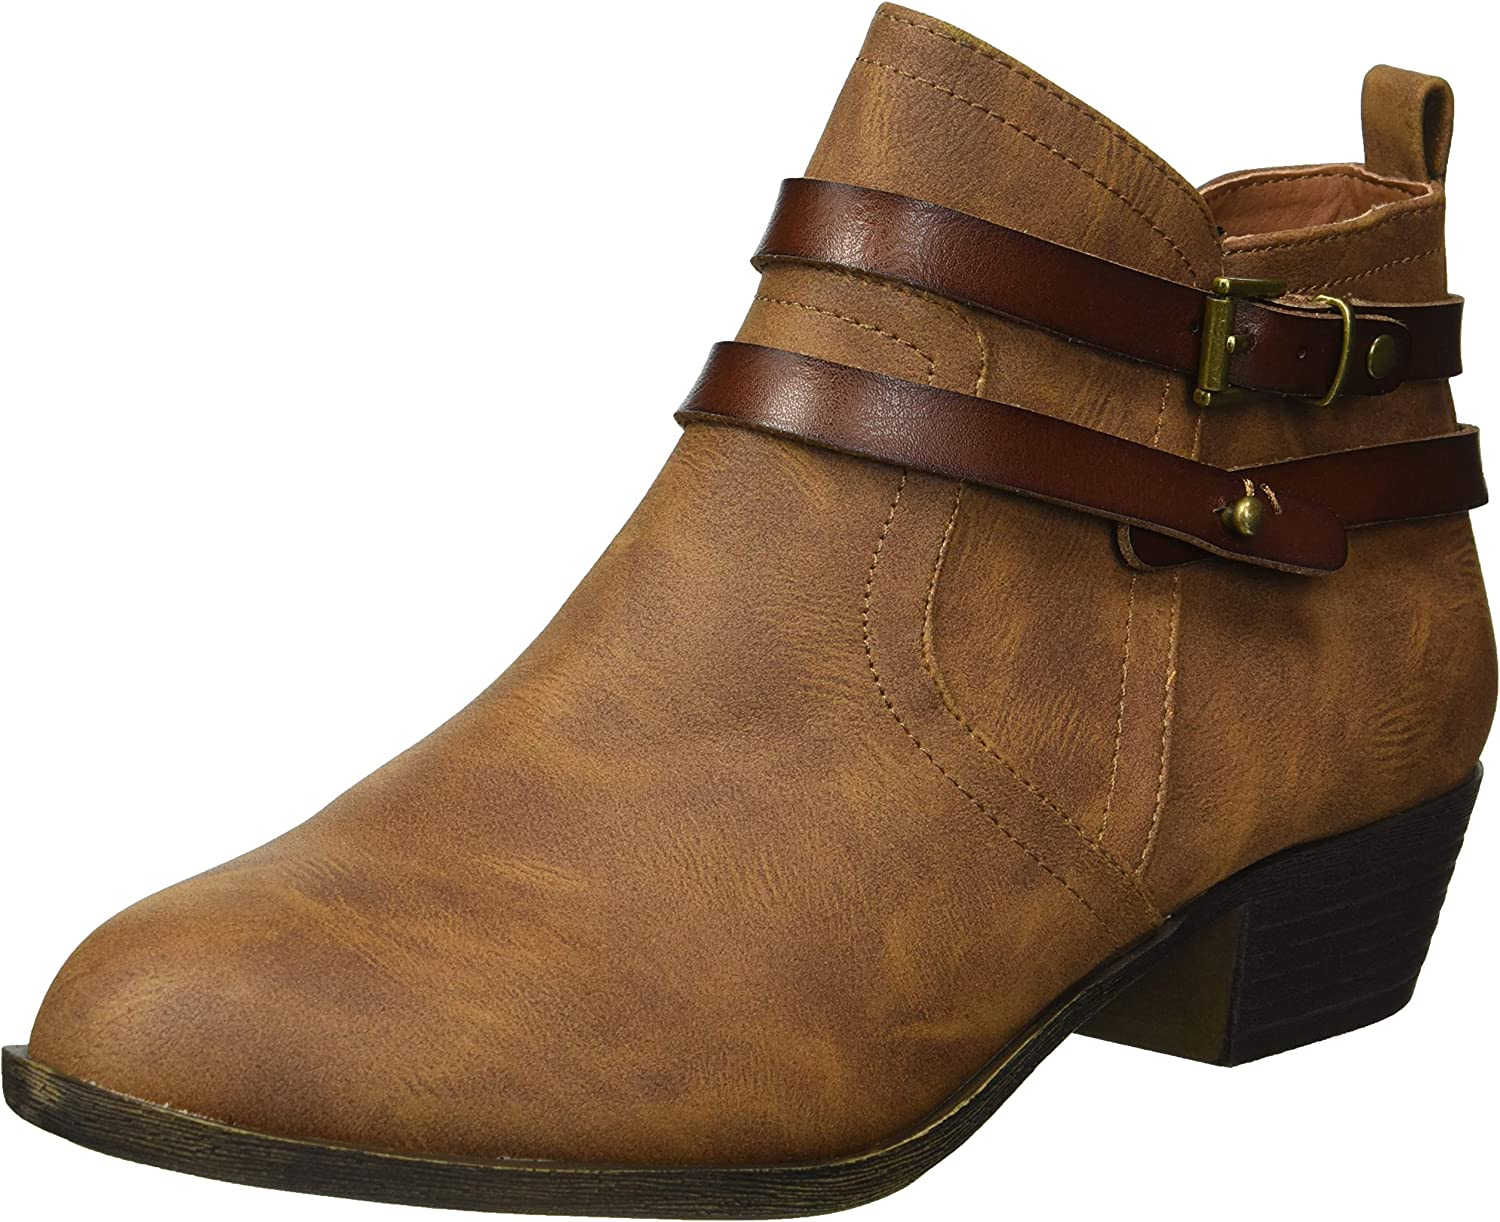 Madden girl Womens Baxxley Ankle Boot